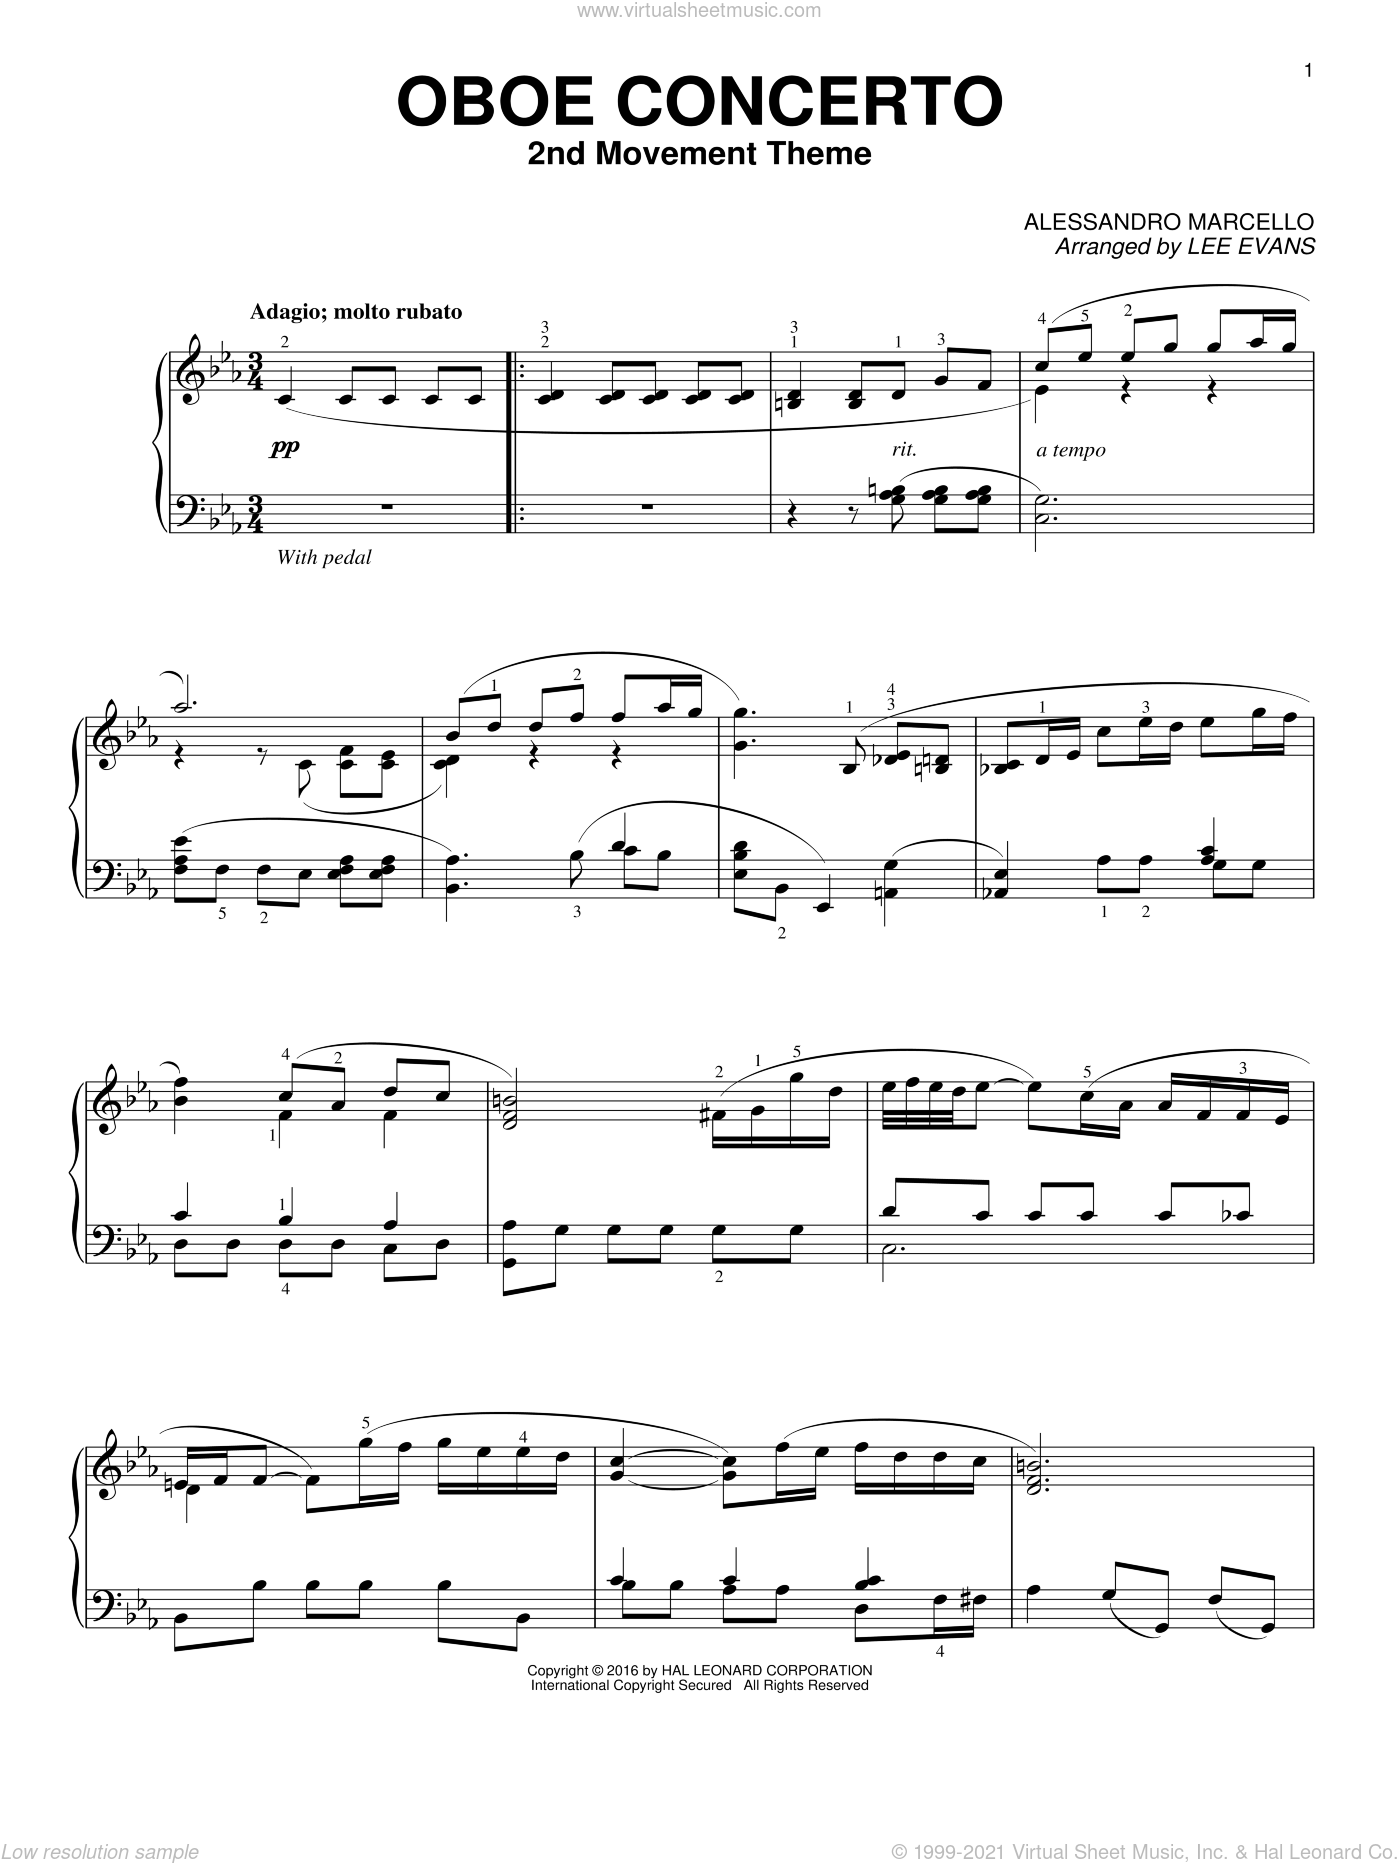 Oboe Concerto In C Minor, 2nd Movement sheet music for piano solo by Alessandro Marcello and Lee Evans, classical score, intermediate skill level